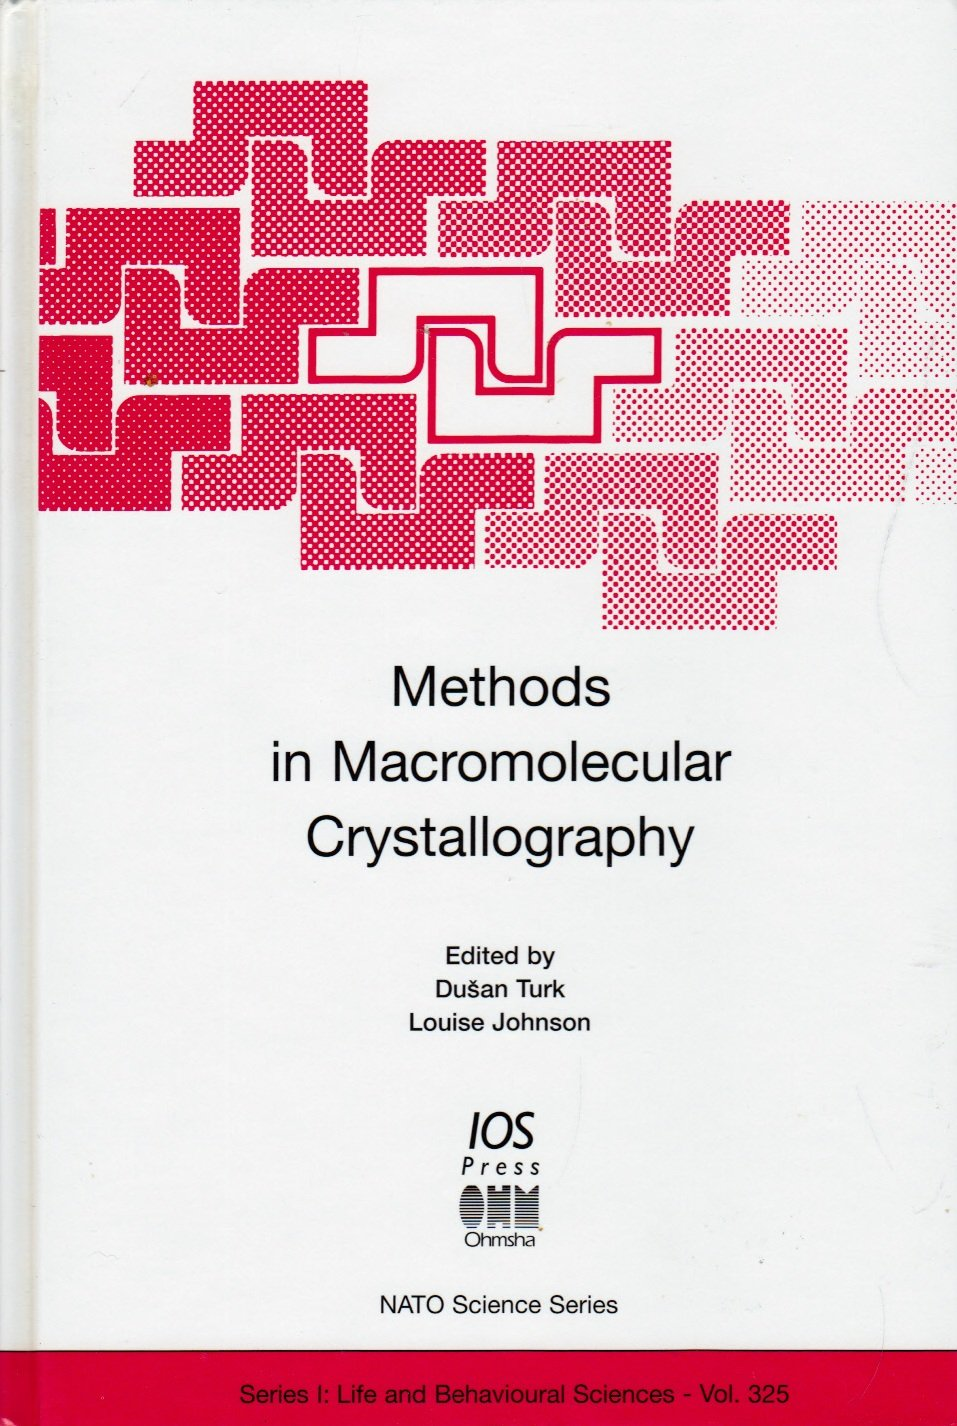 Download Methods in Macromolecular Crystallography (NATO Science Series I : Life and Behavioural Sciences, Volume 325) PDF